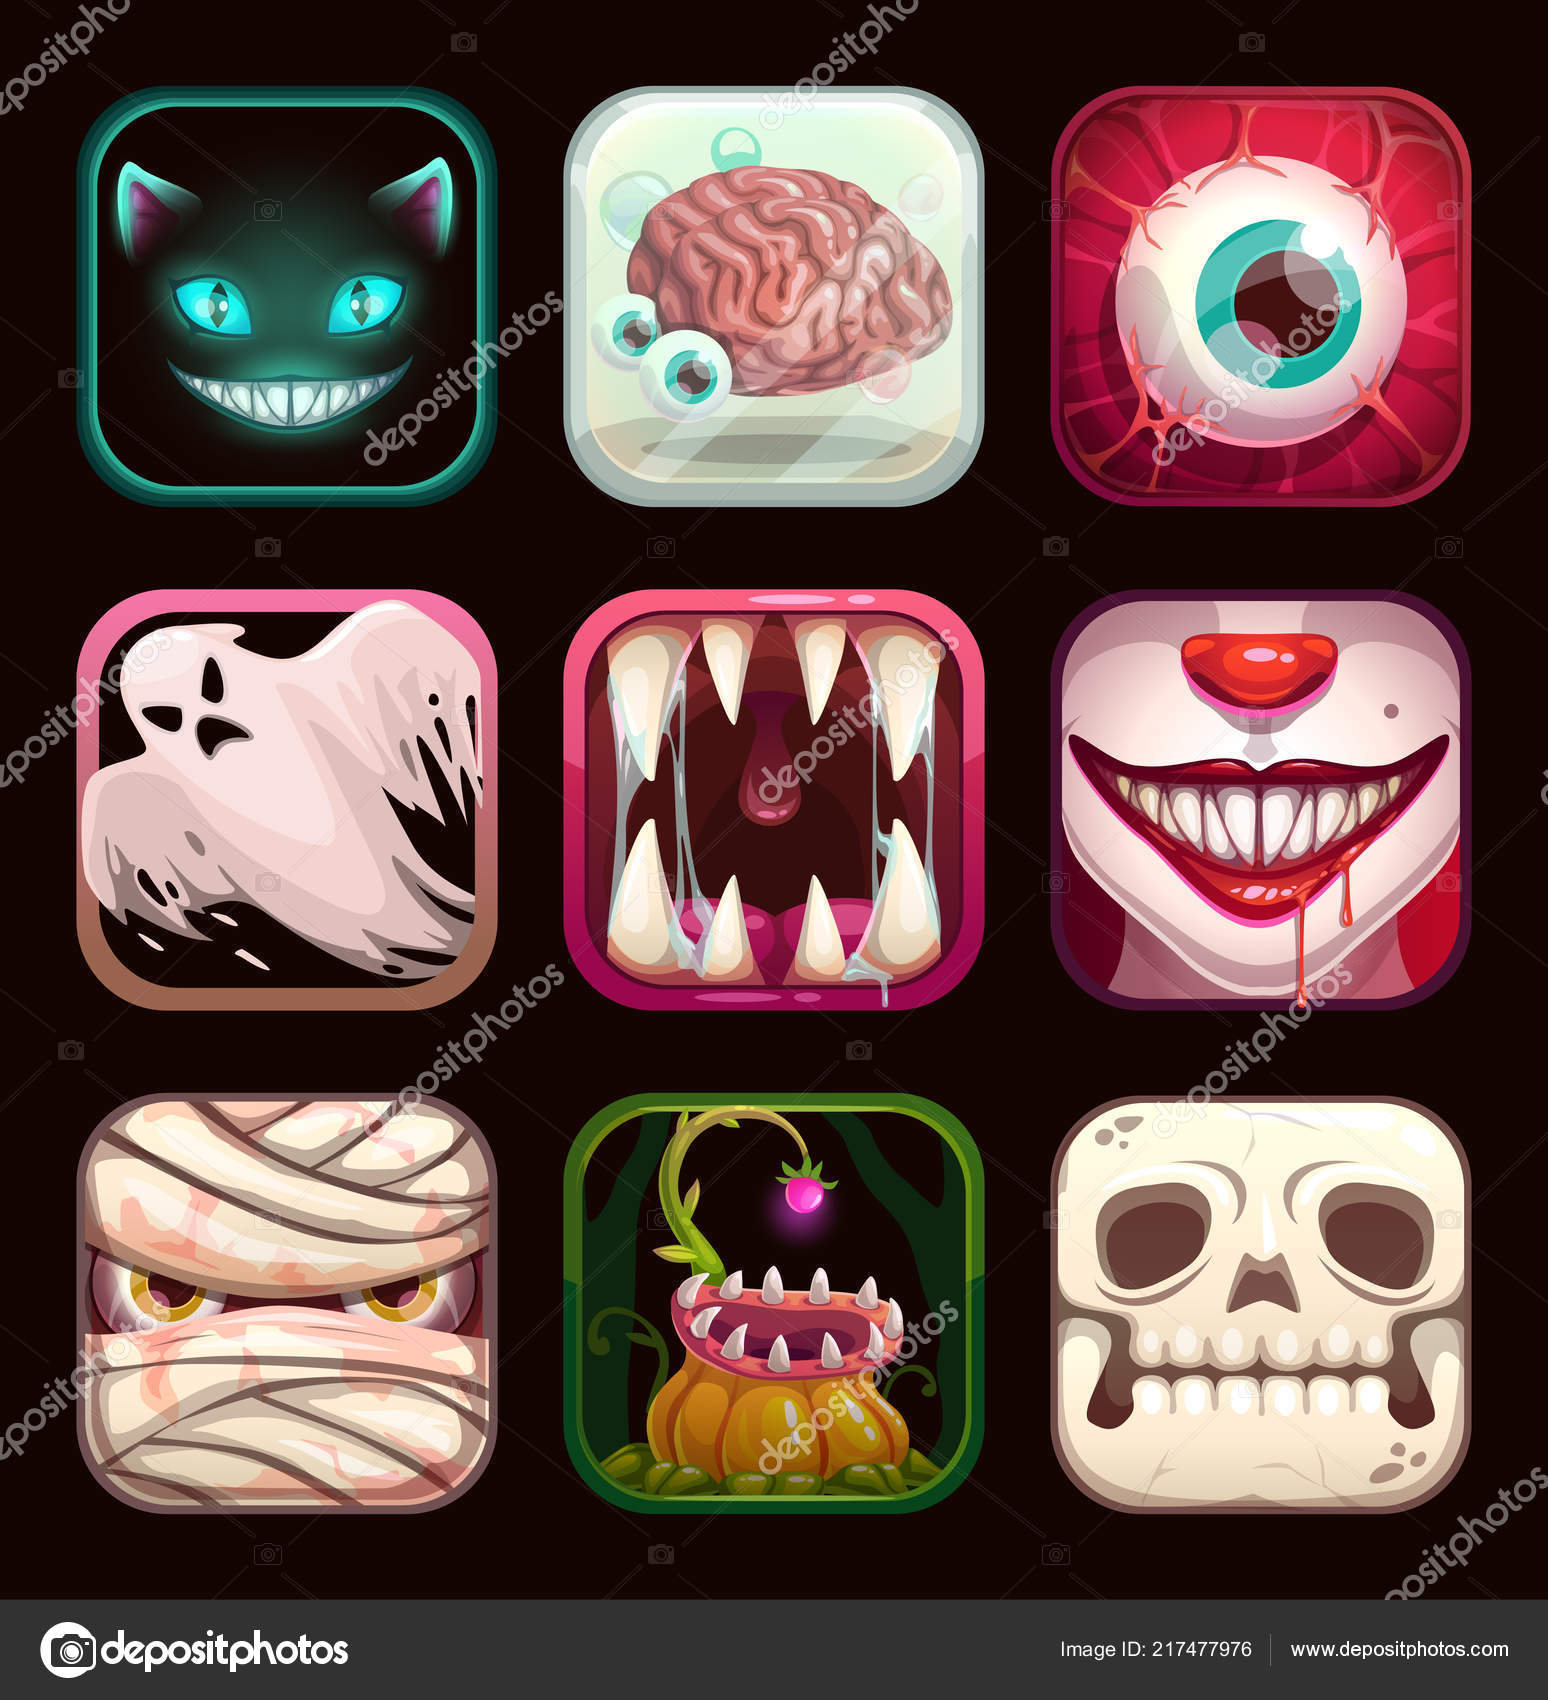 Pictures: creepy icons | Scary app icons on black background